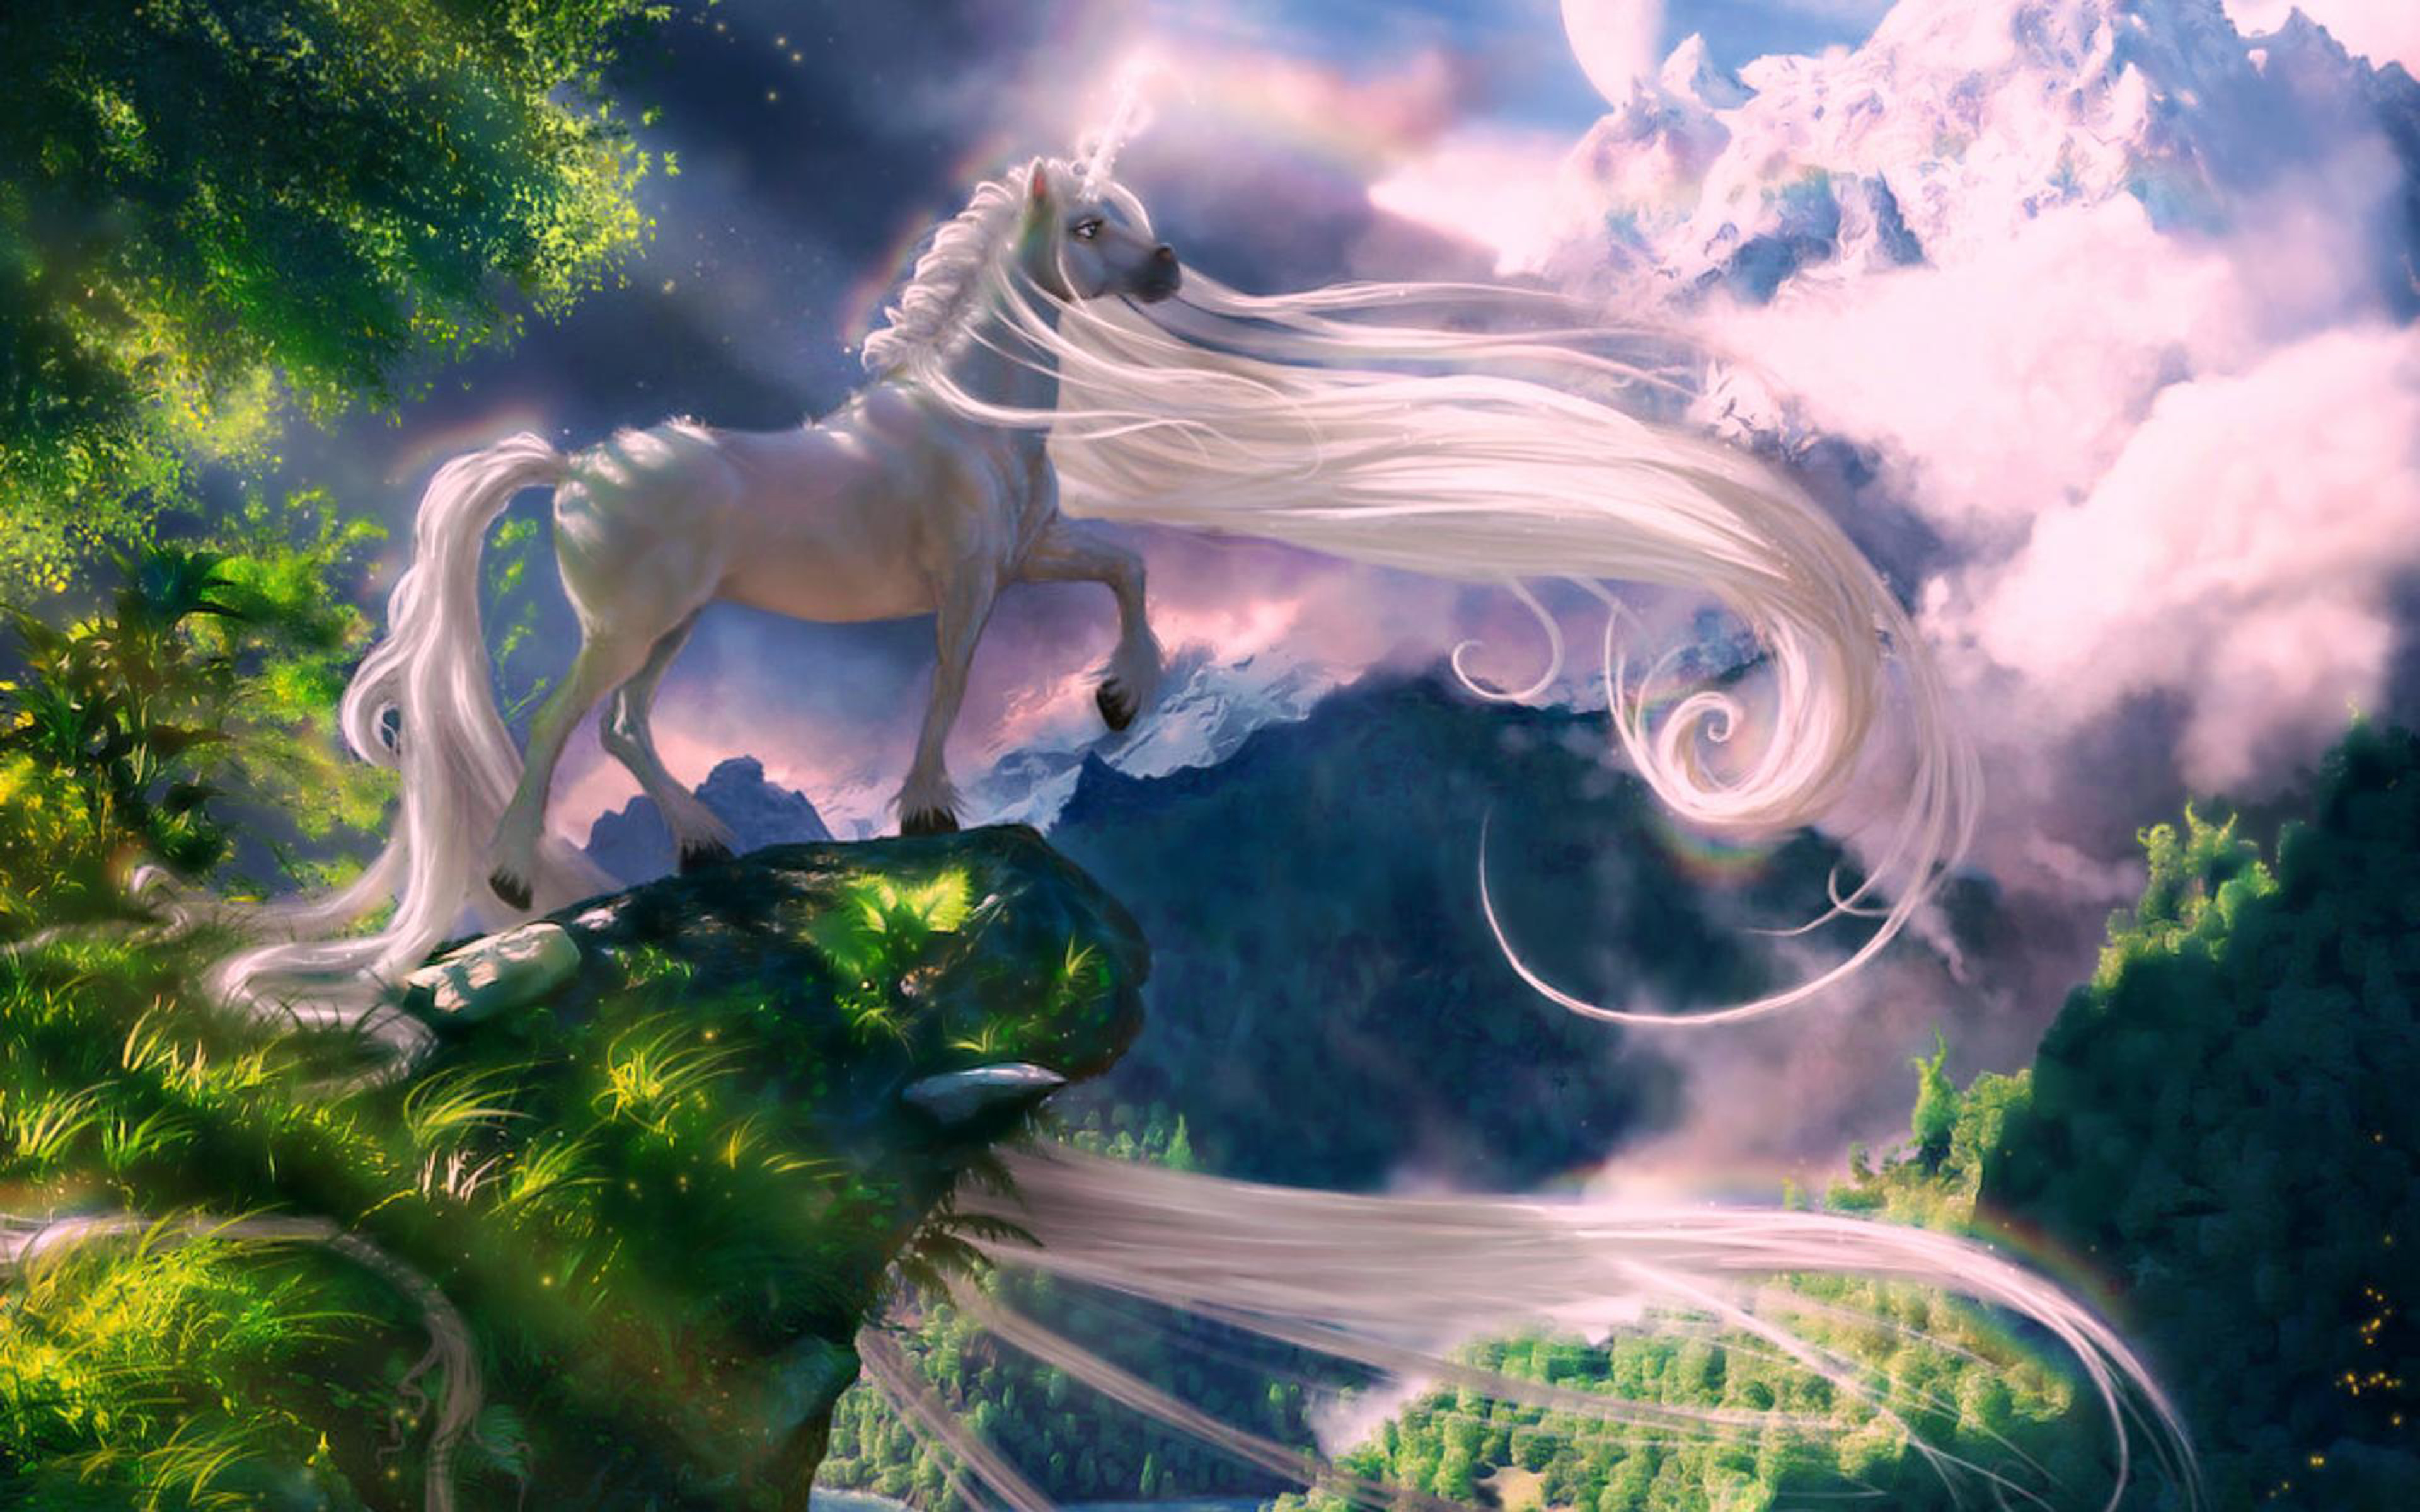 Download Original Resolution - Unicorn Mystical Background , HD Wallpaper & Backgrounds